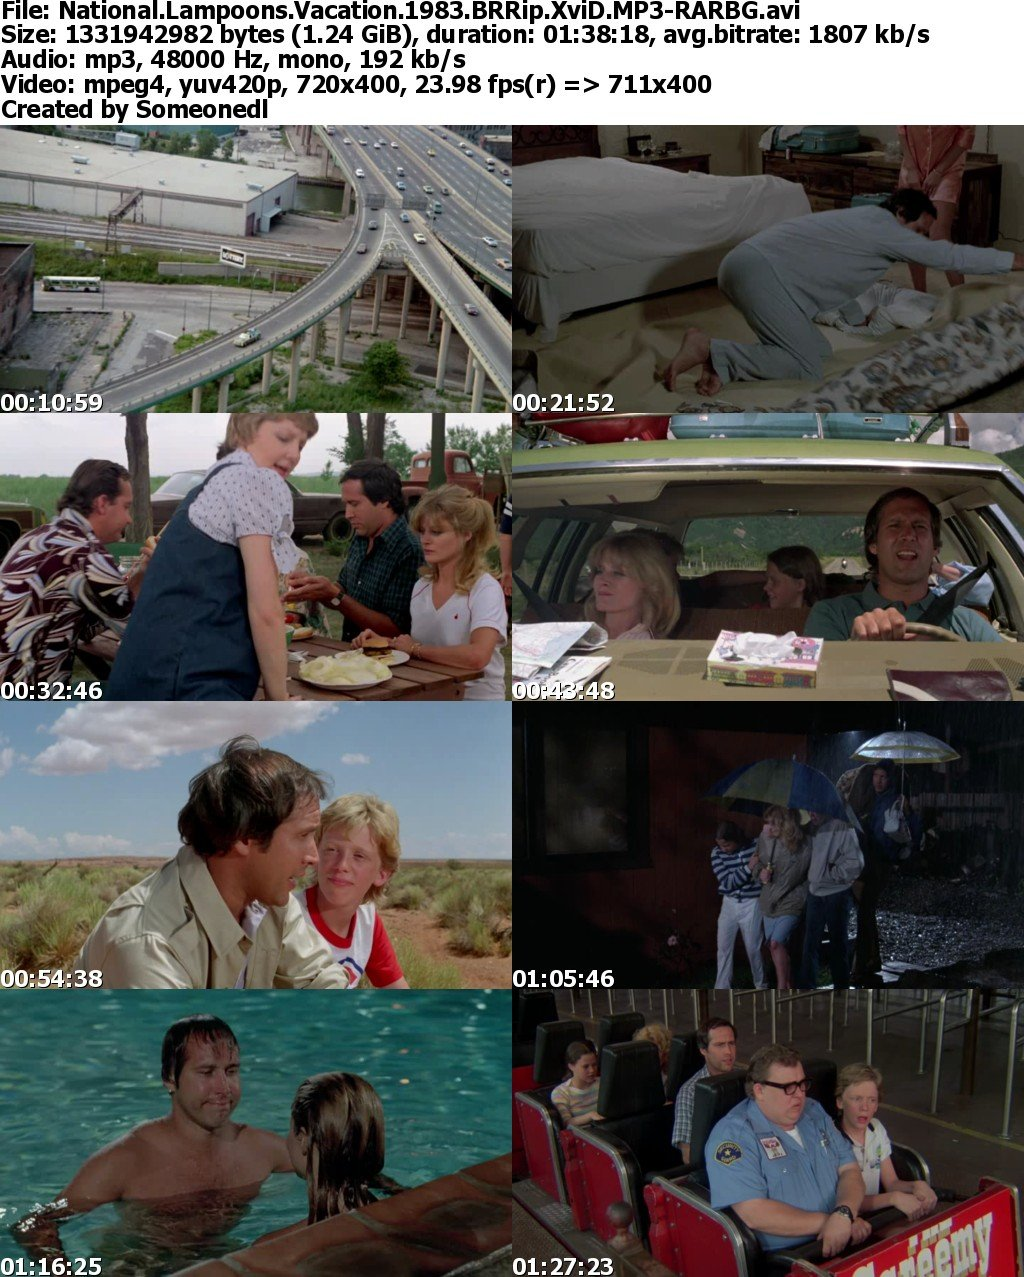 download national lampoons vacation 1983 brrip xvid mp3